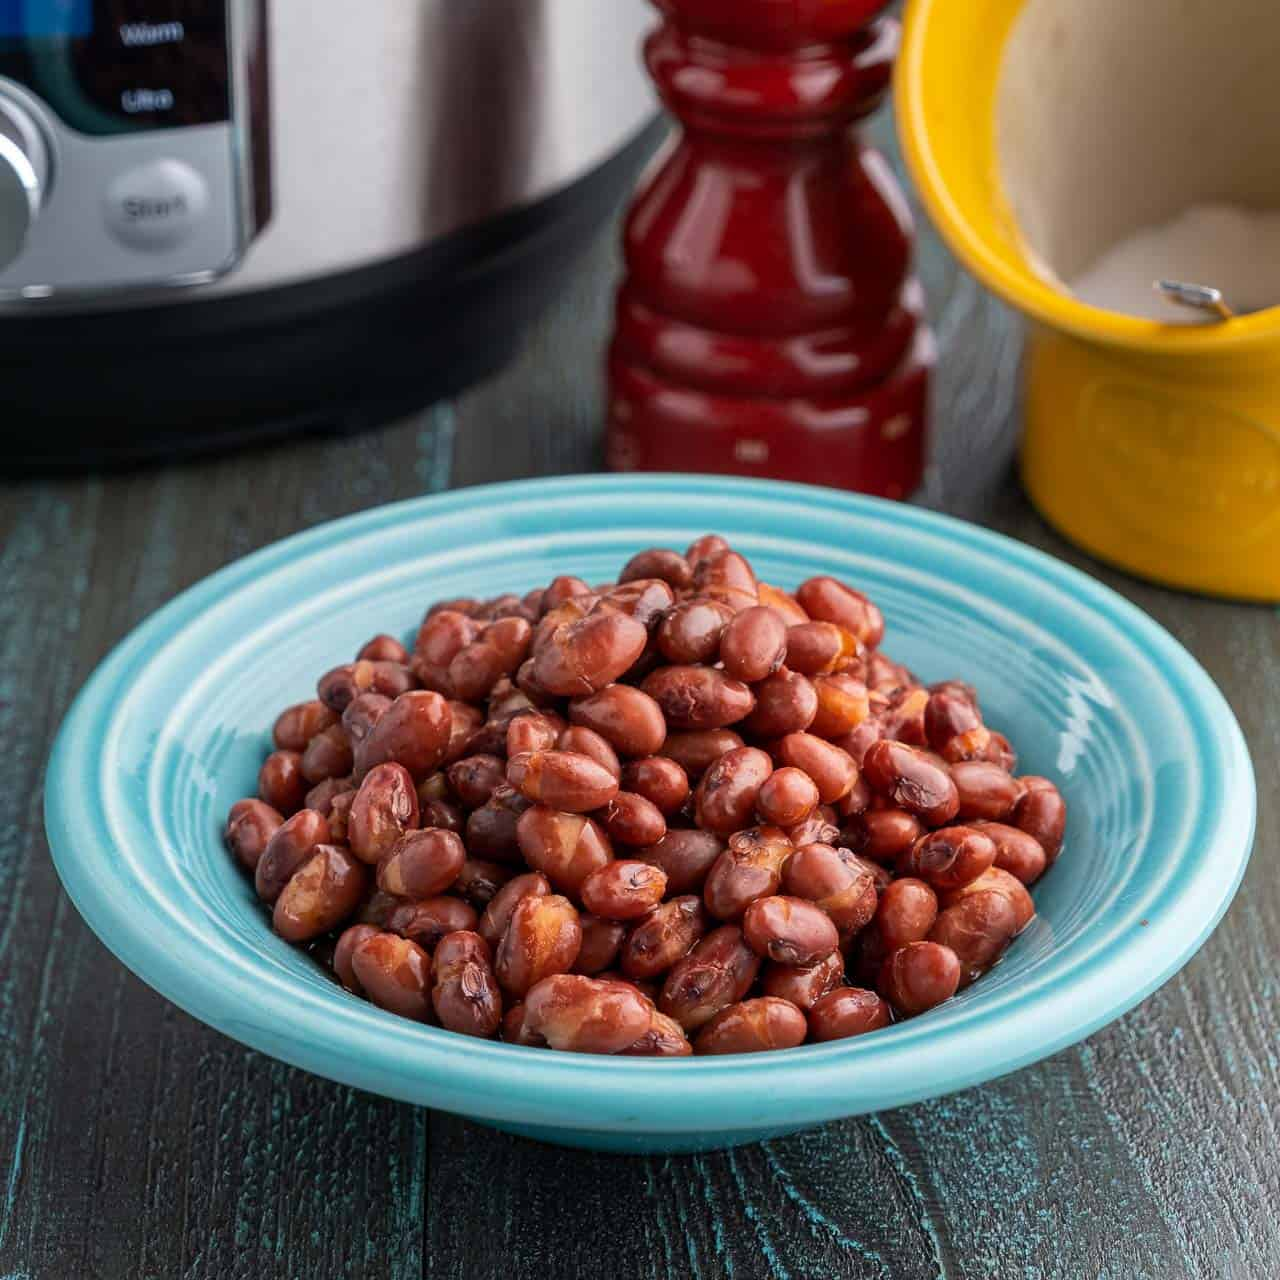 A bowl of red beans in front of a pressure cooker, a salt pig, and a pepper grinder